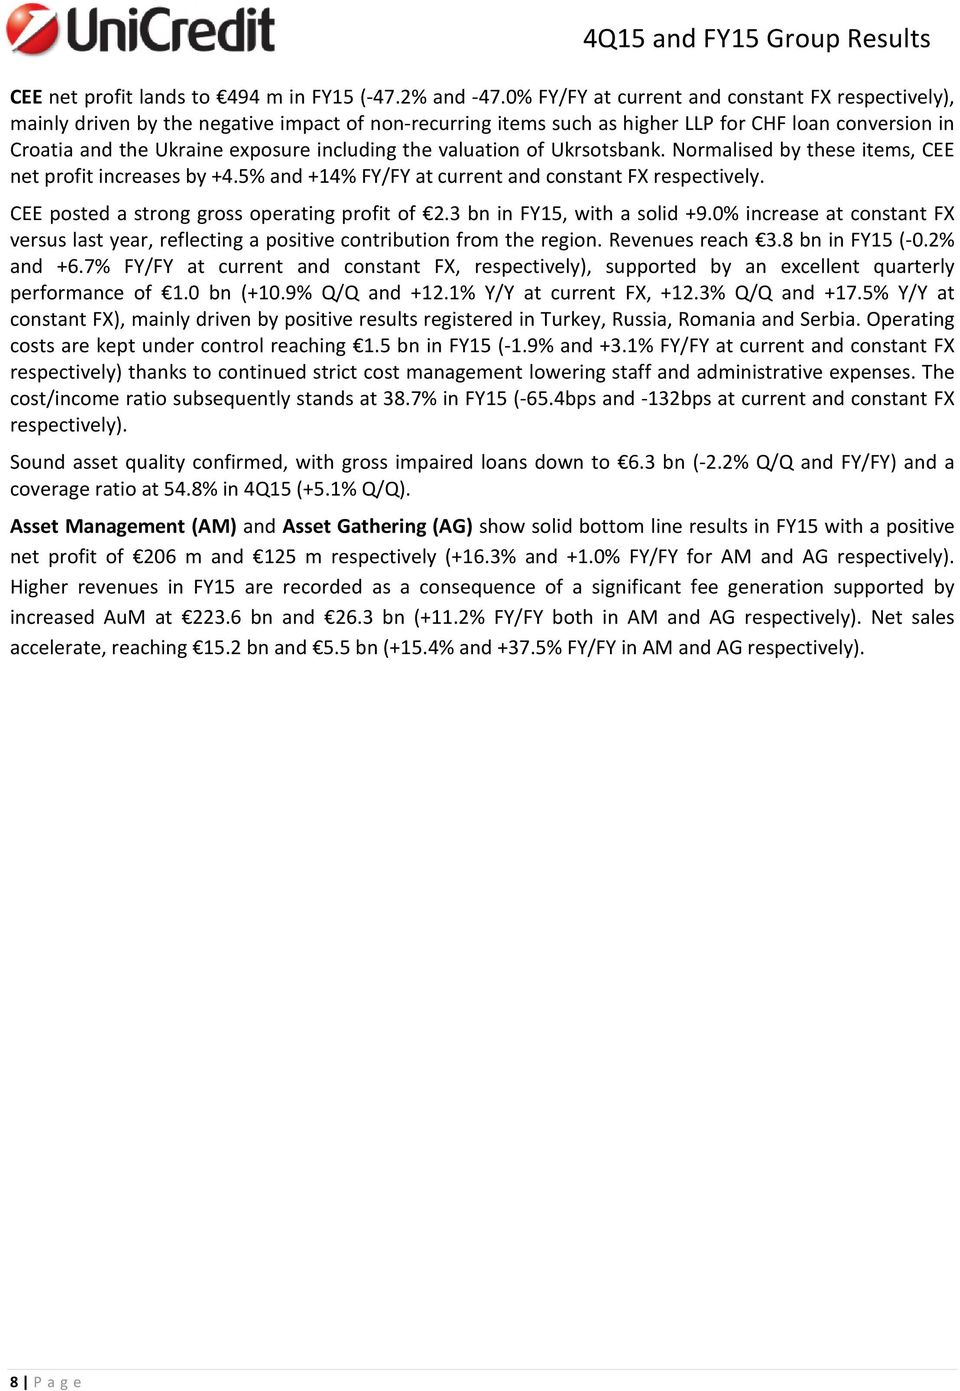 the valuation of Ukrsotsbank. Normalised by these items, CEE net profit increases by +4.5% and +14% FY/FY at current and constant FX respectively. CEE posted a strong gross operating profit of 2.